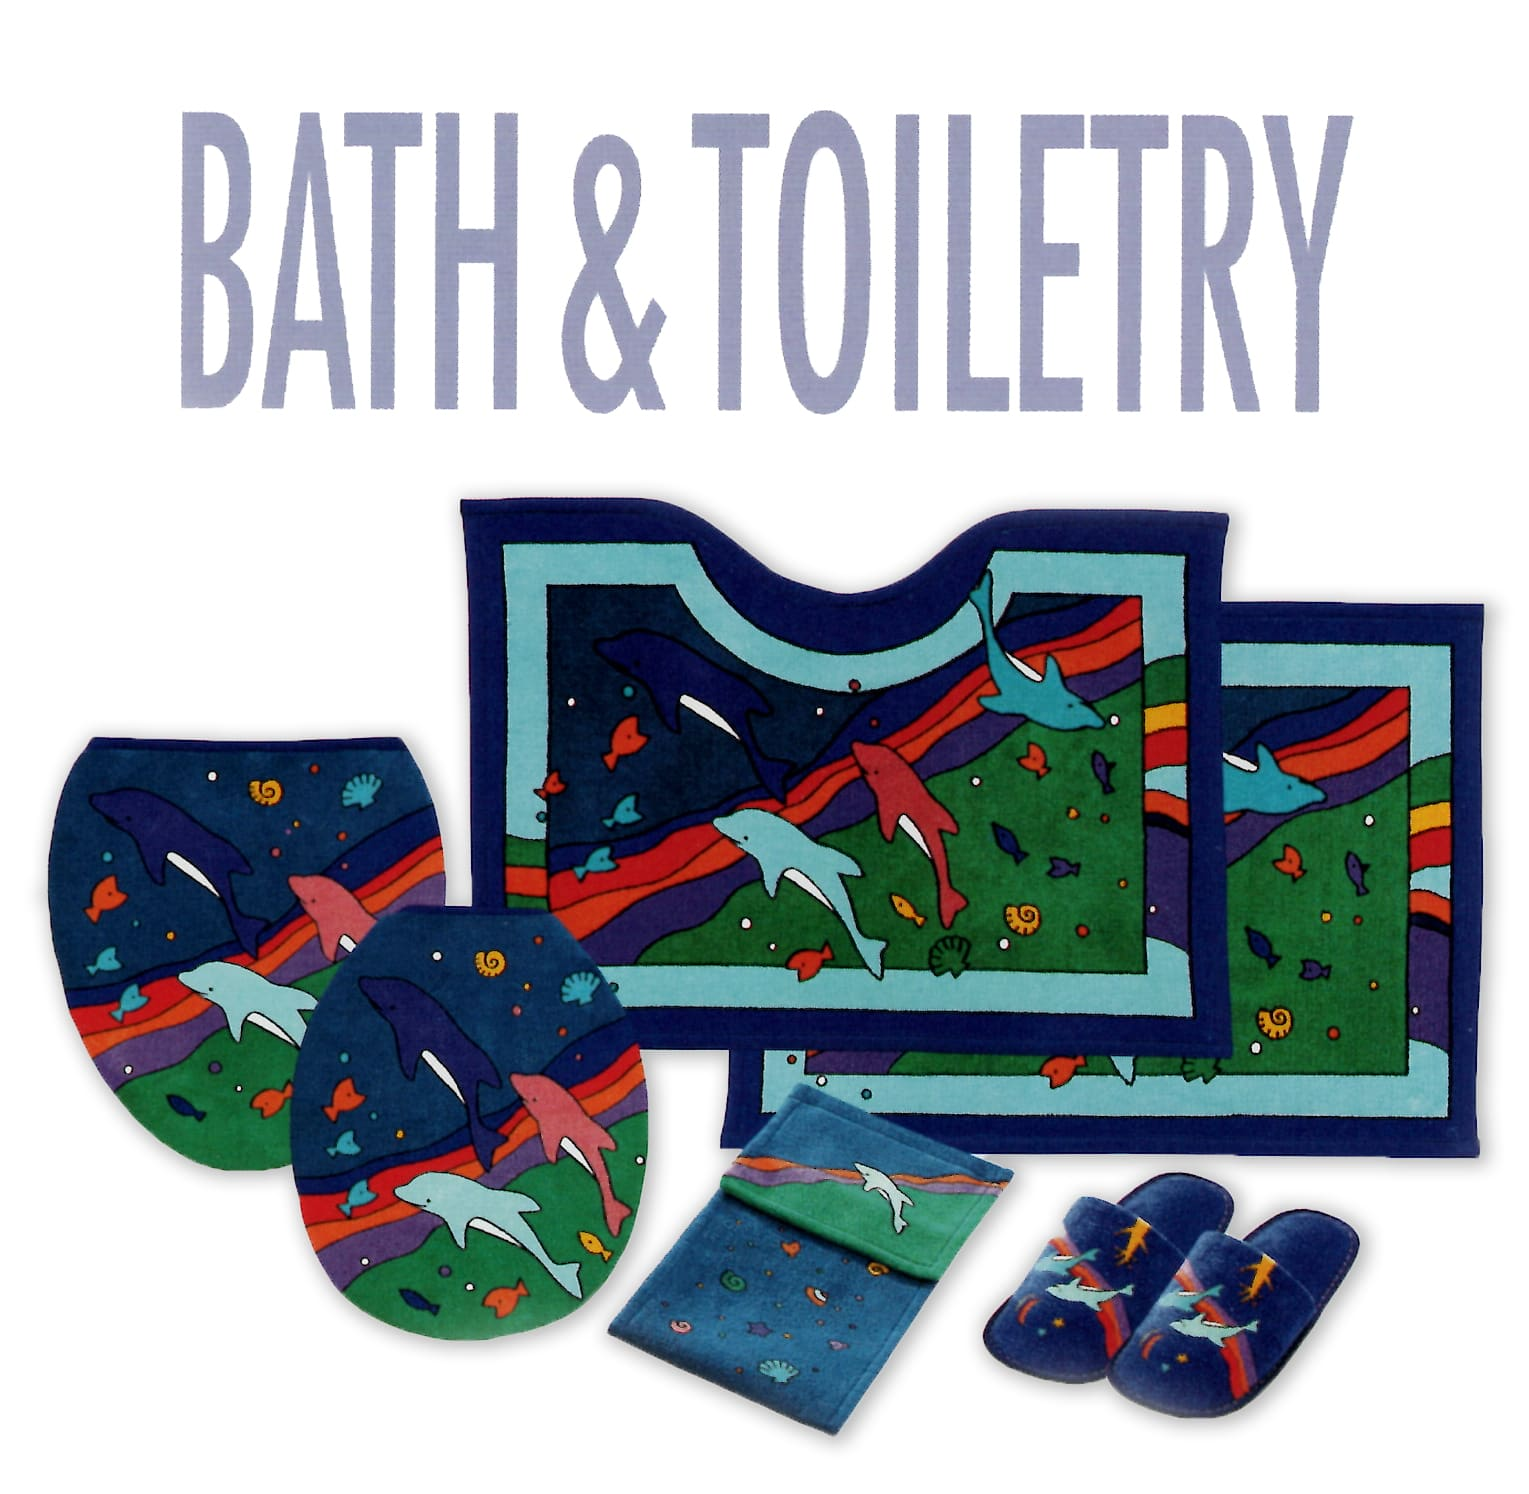 Bath and Toiletry for kids